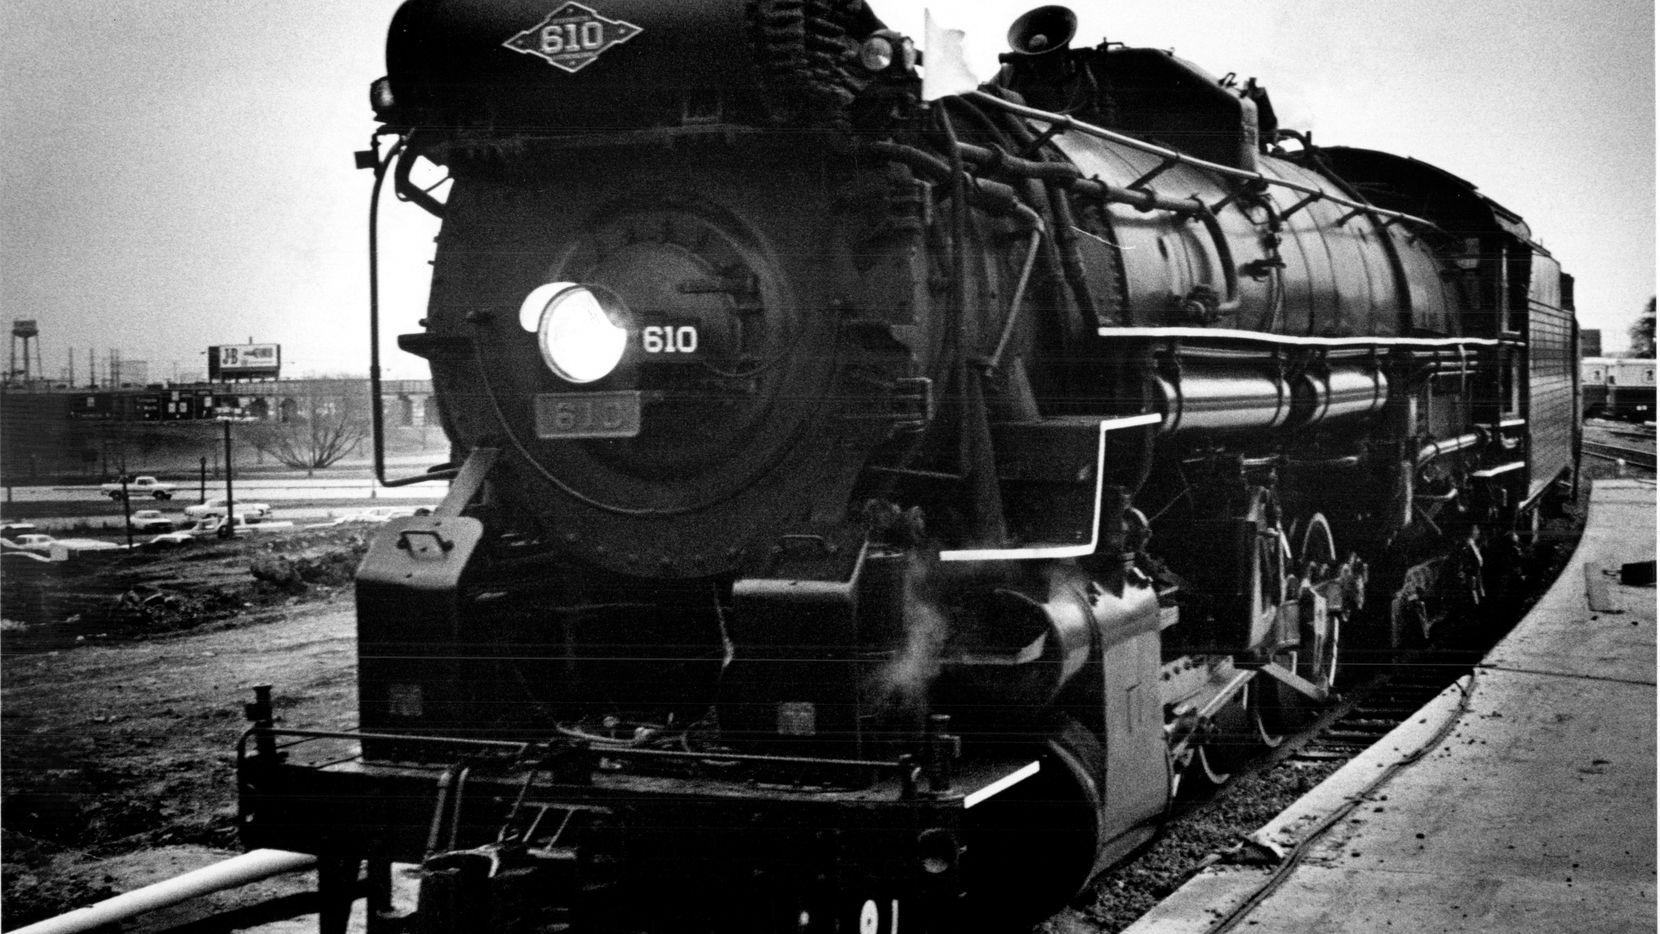 Example of an oil-burning steam engine, the 610 Texas & Pacific, made by Lima Locomotive Works, circa 1920s. Photo taken on March 2, 1977.